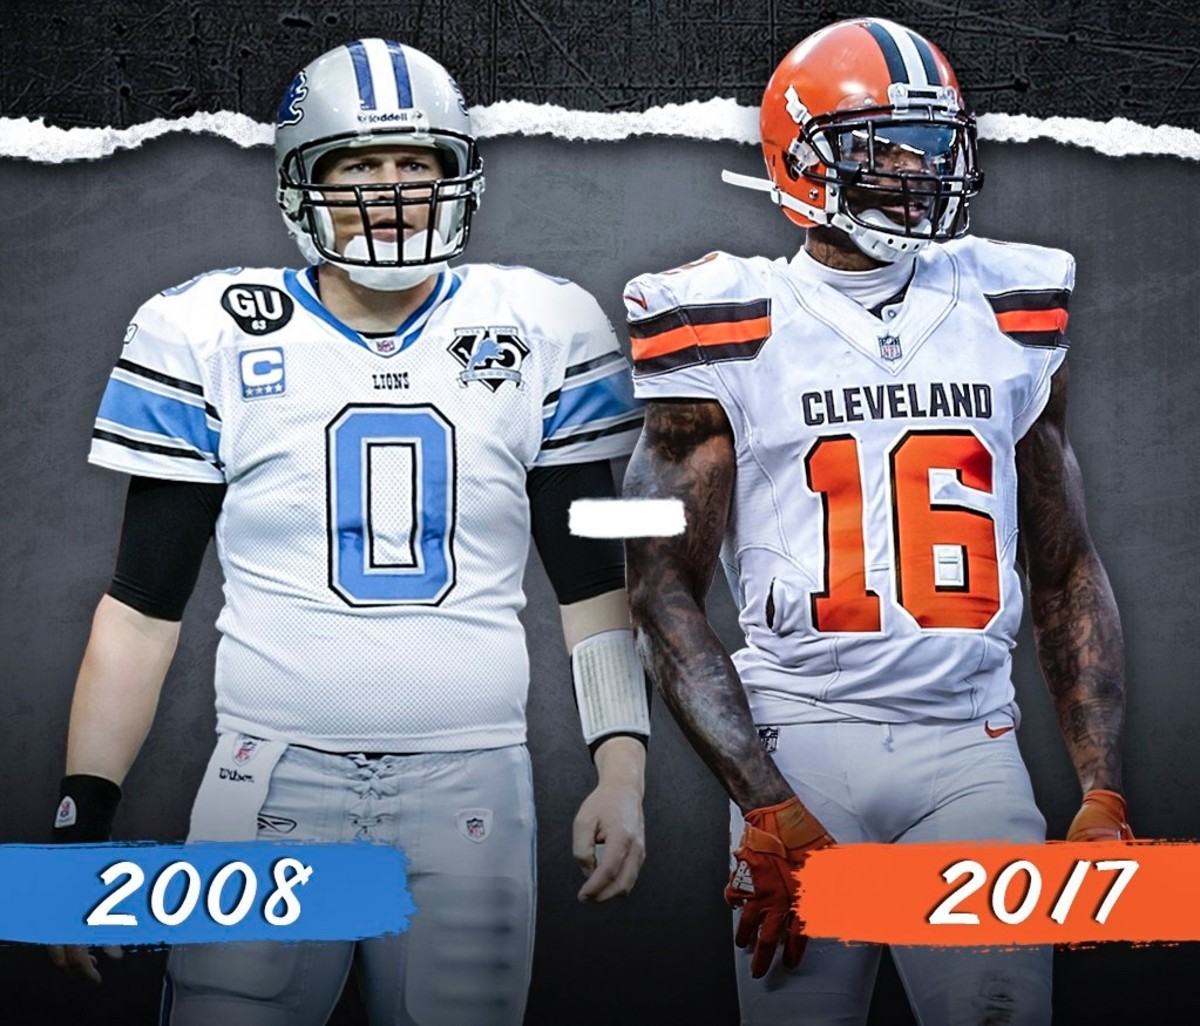 who-was-worse-2016-cleveland-browns-vs-2008-detroit-lions